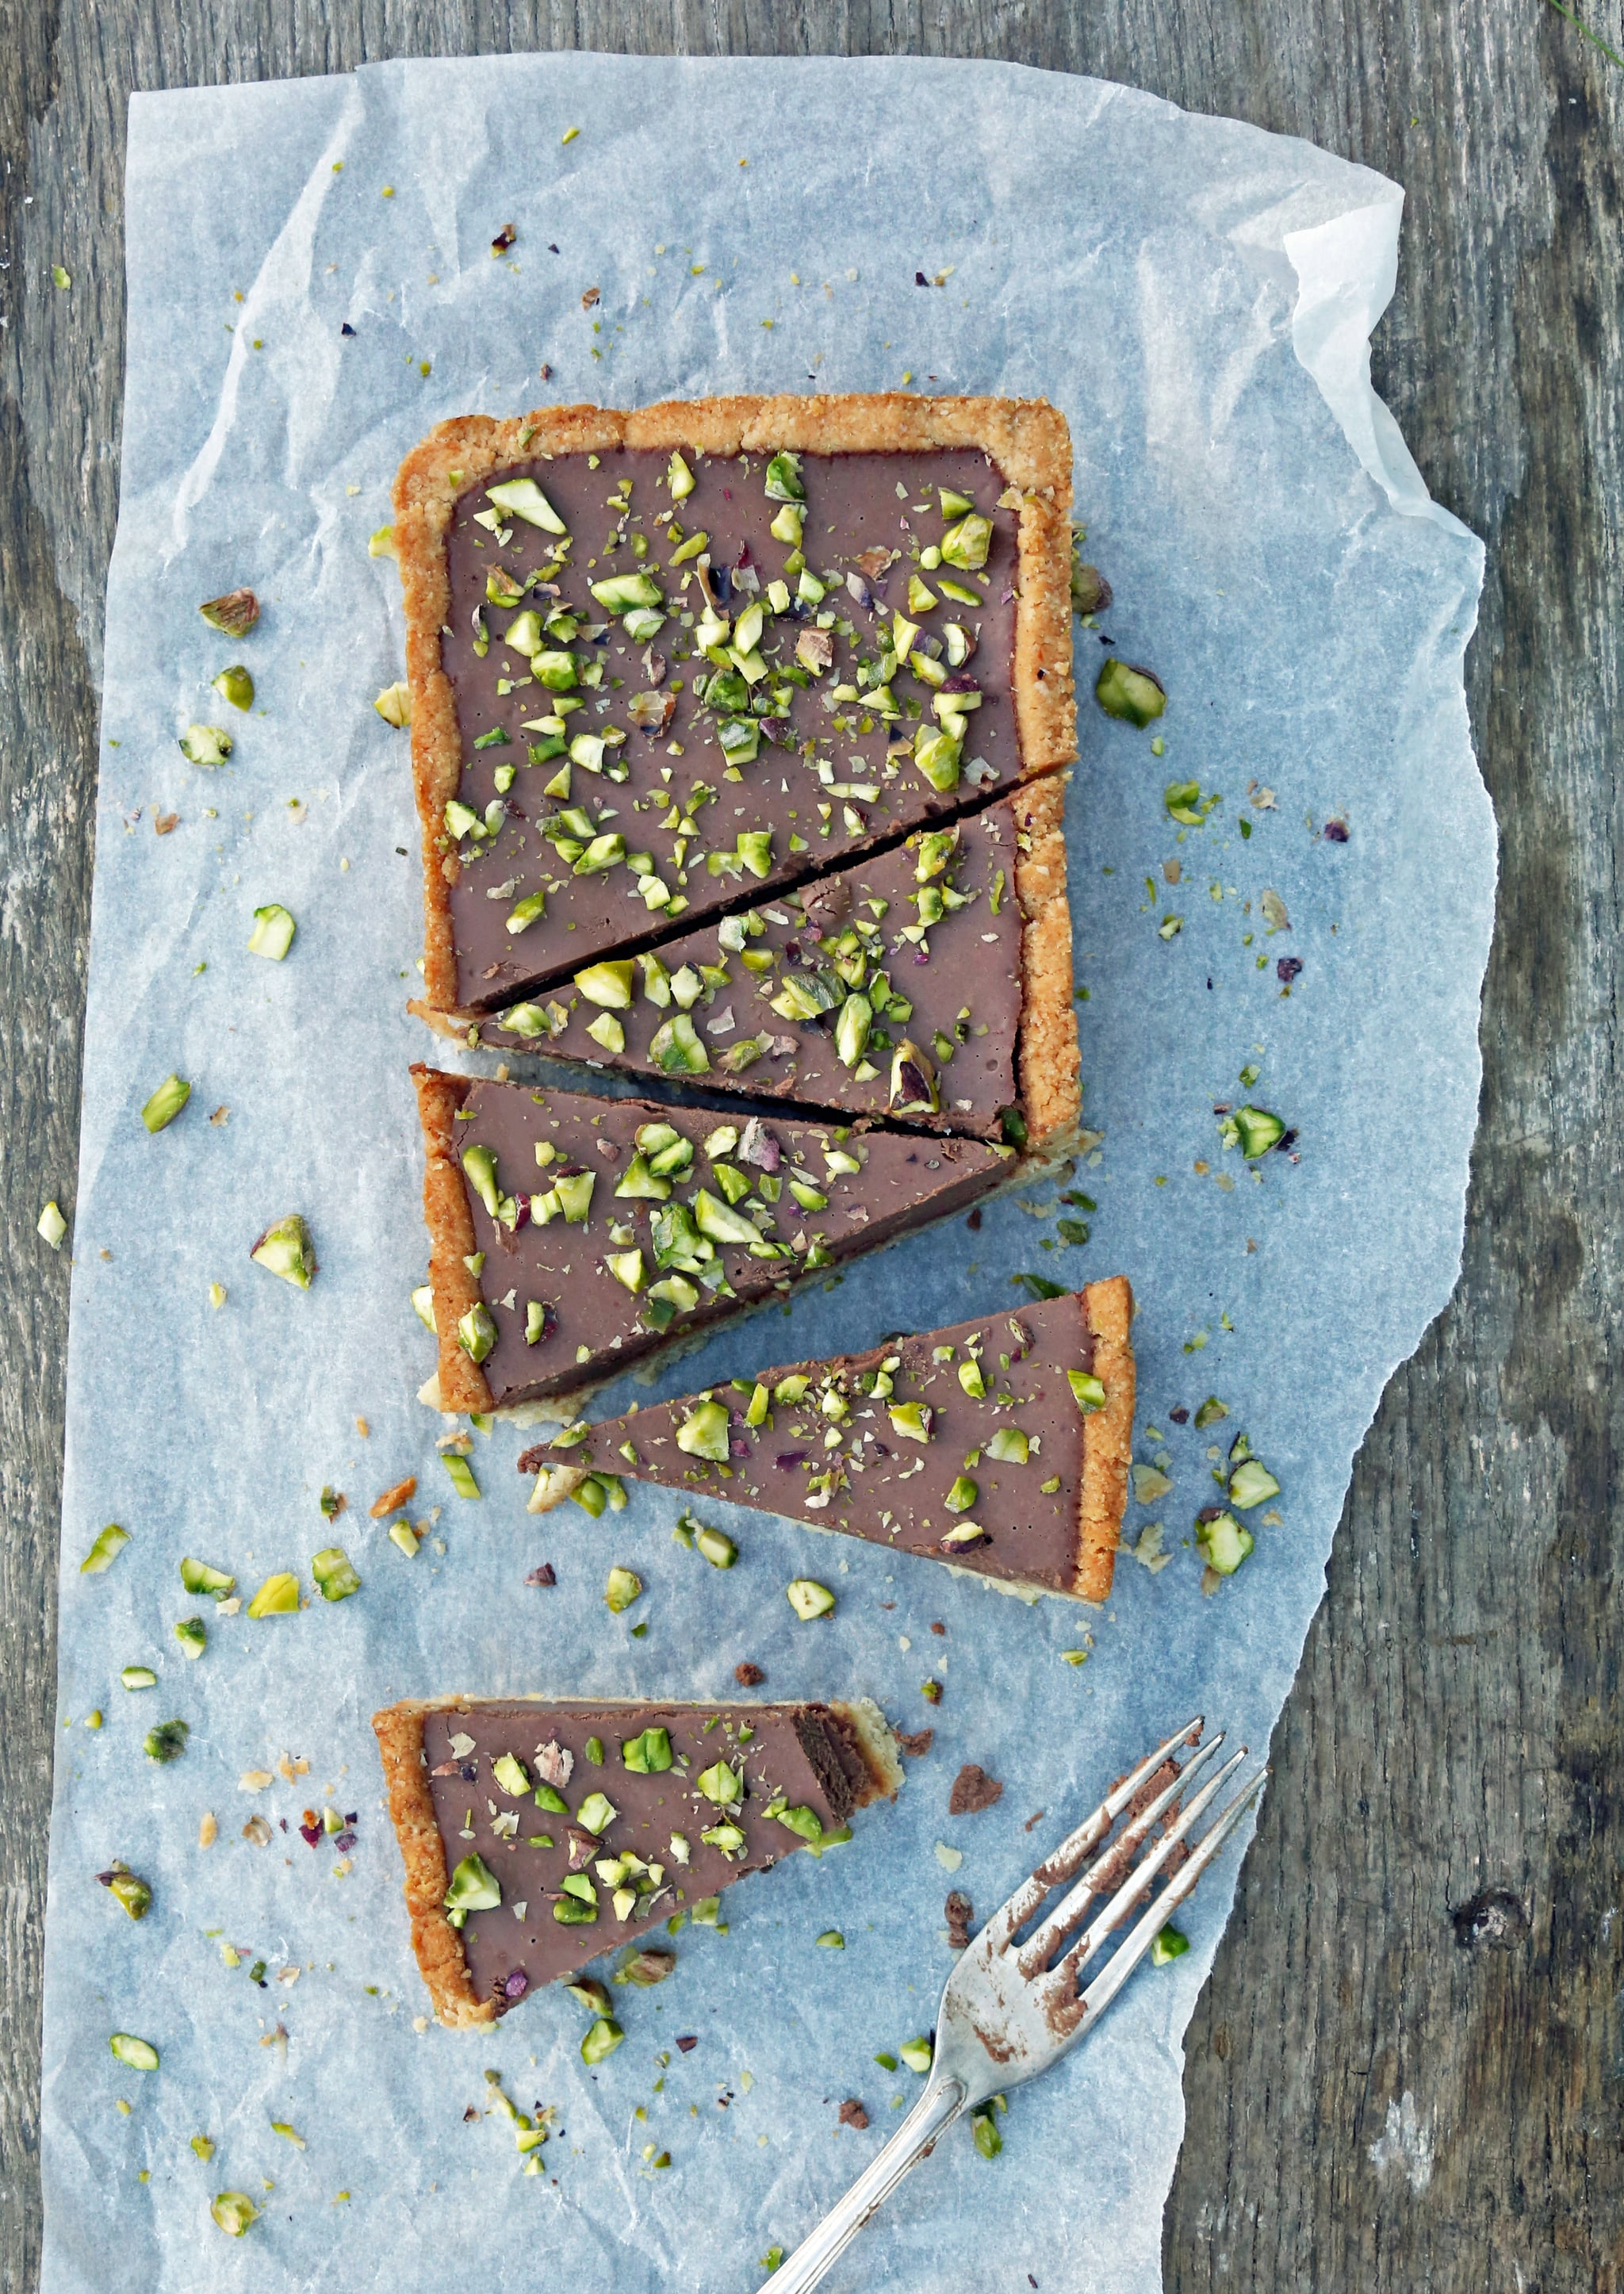 Meet the Chocolate Tart That'll Do More Than Satisfy Your Sweet Tooth